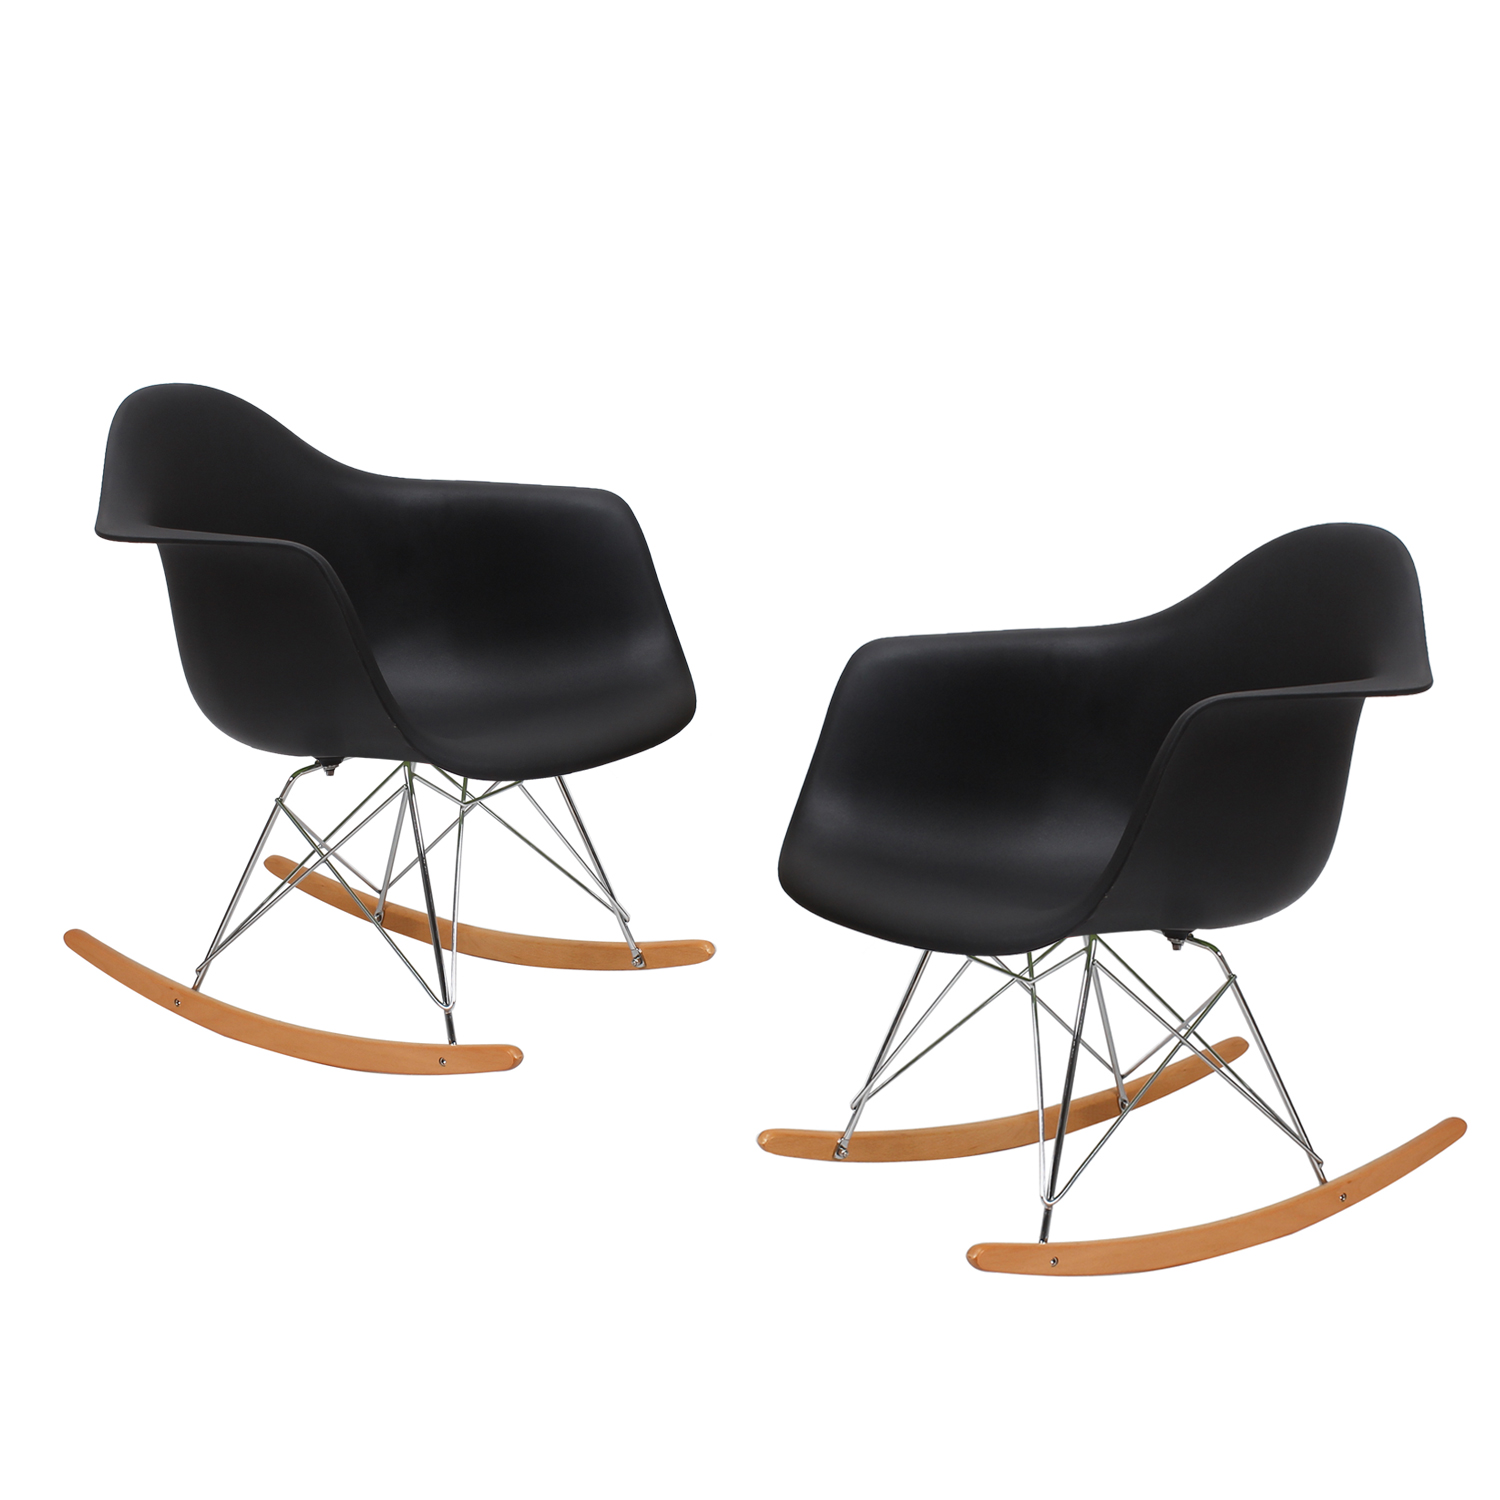 Decenthome Decenthome Black Charles Ray Eames Modern Rocking Chairs Armchairs With Beech Wood Rocker Ch0195 2 Ach195 2